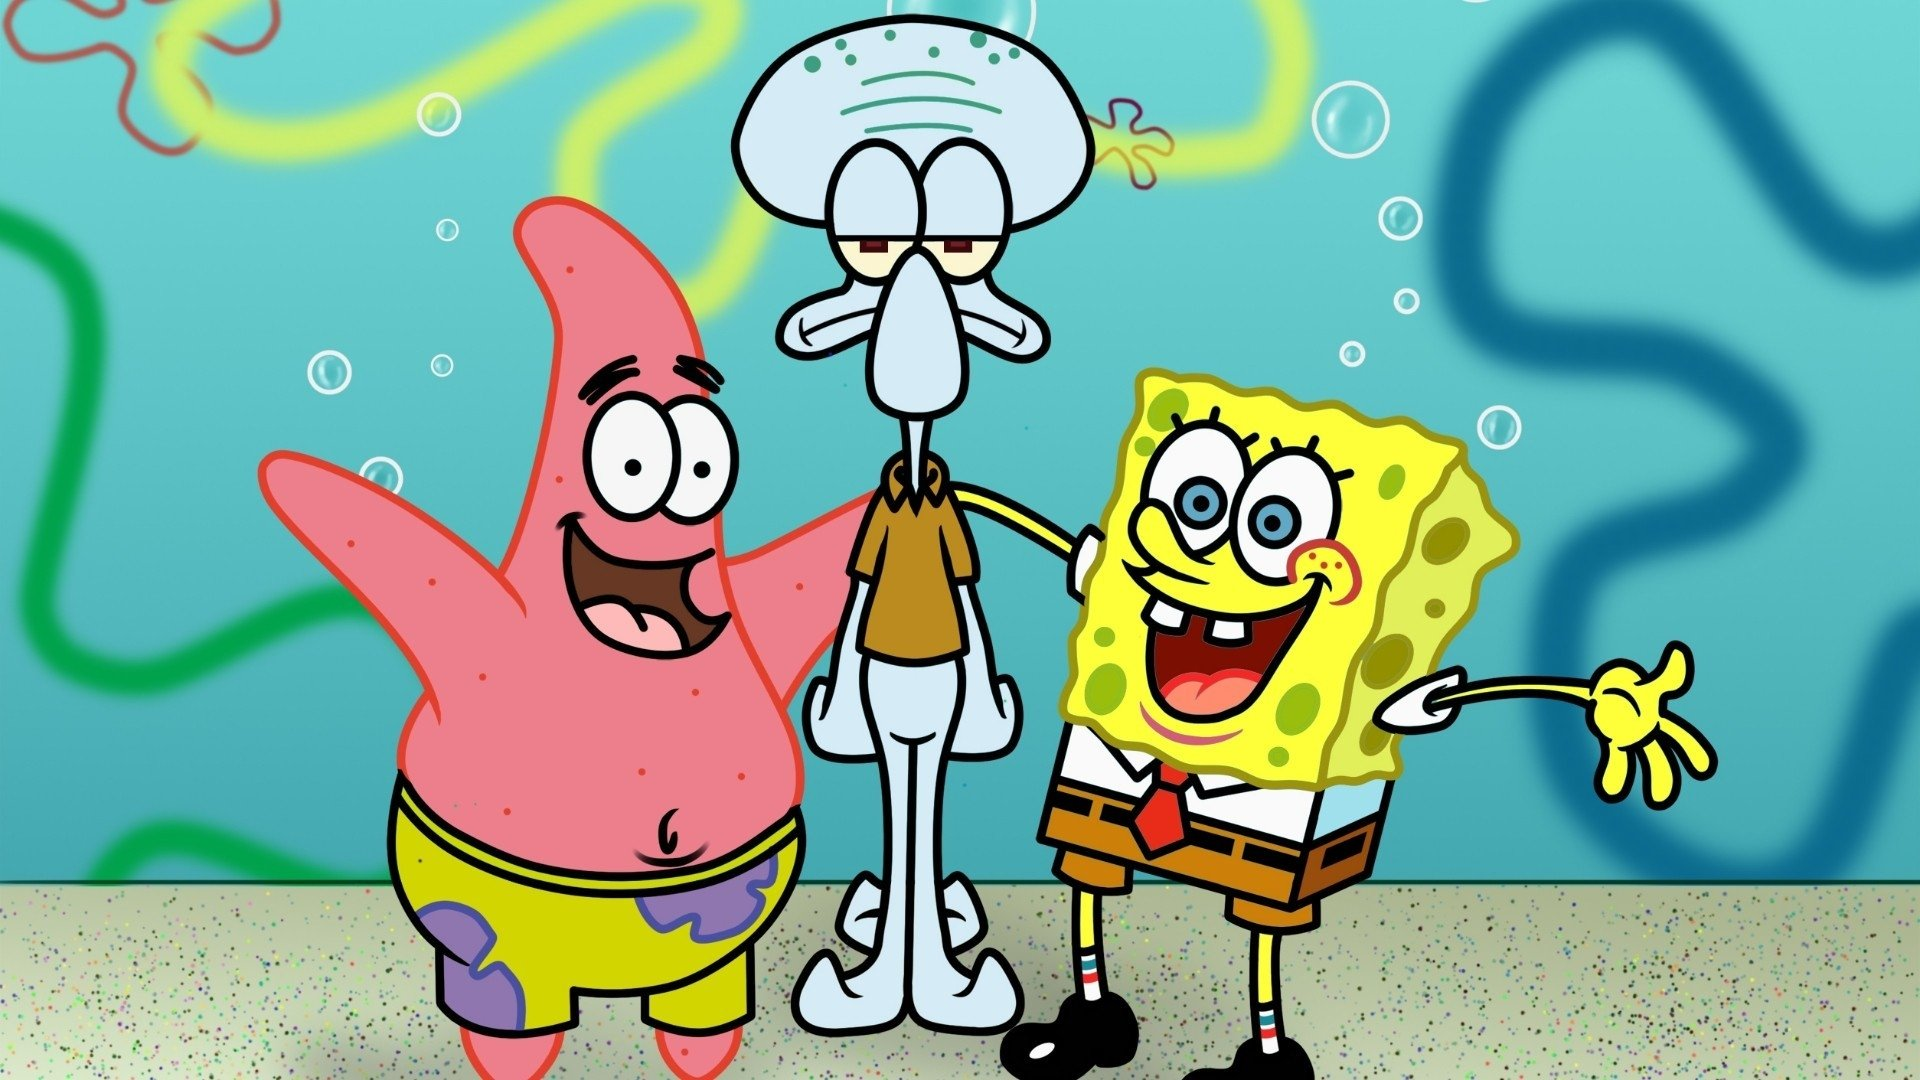 81 Spongebob Squarepants HD Wallpapers